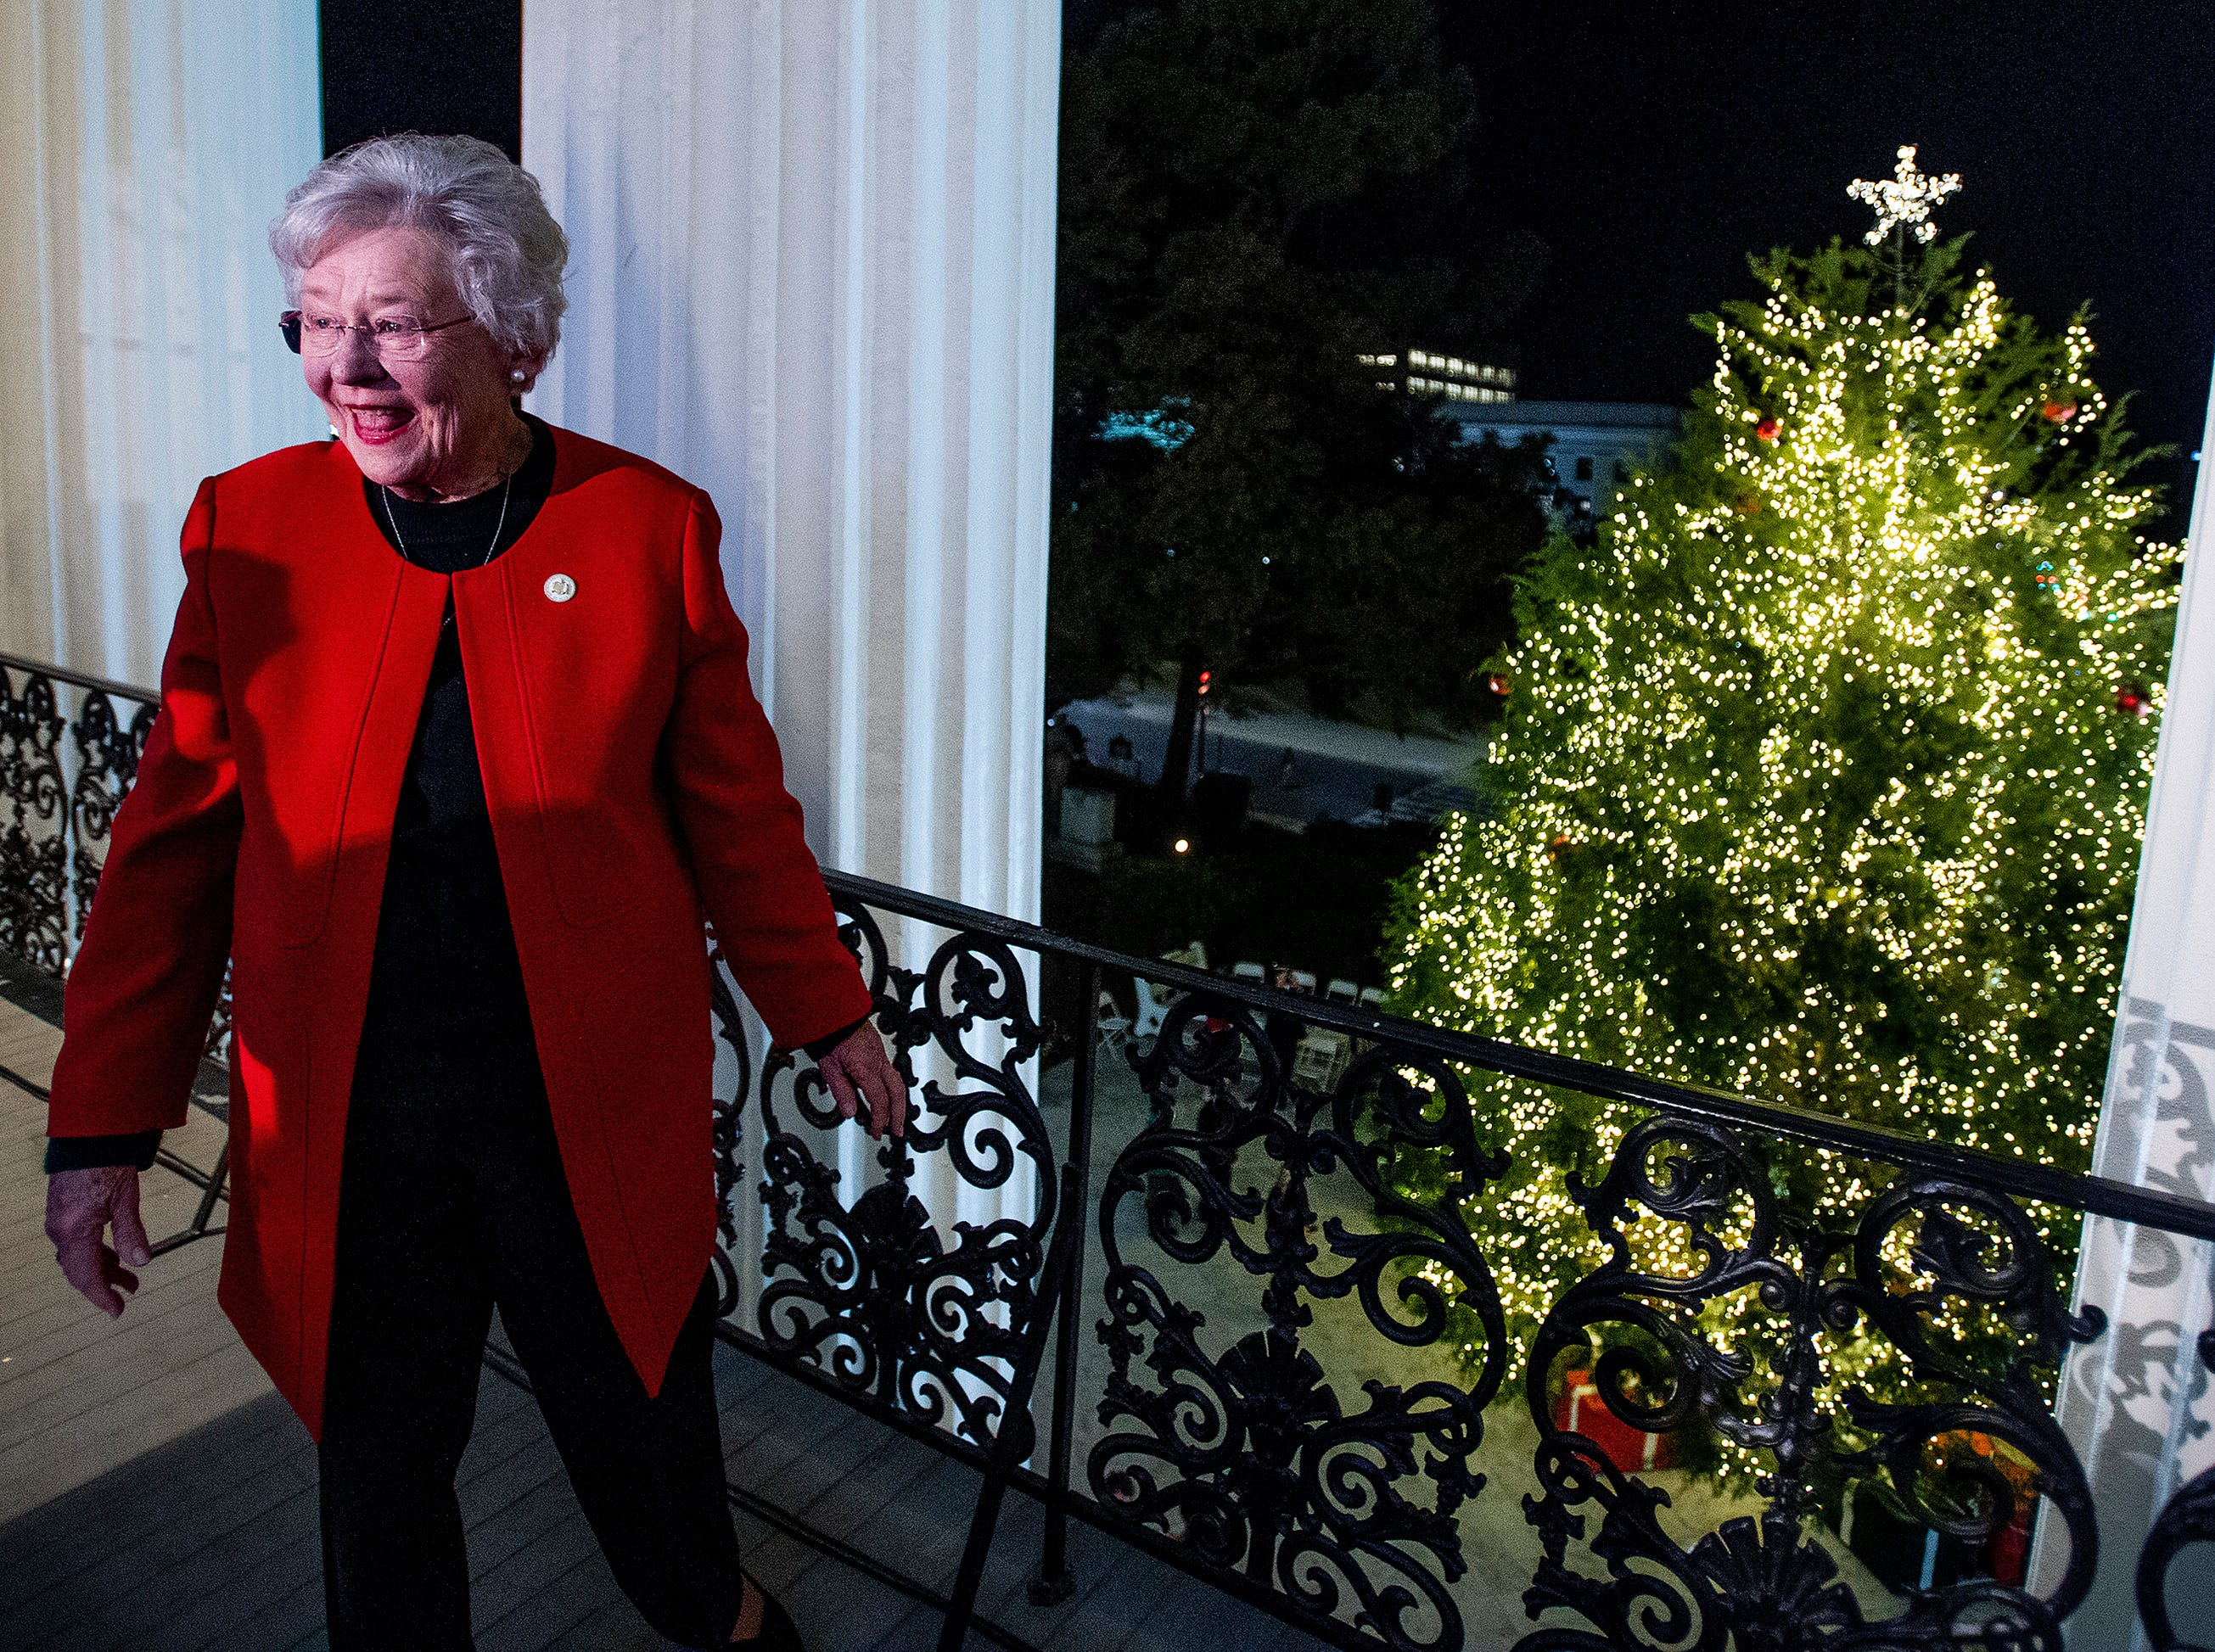 Governor Kay Ivey checks out the State Capitol Christmas Tree during the tree lighting ceremony in Montgomery, Ala., on Friday evening December 7, 2018.